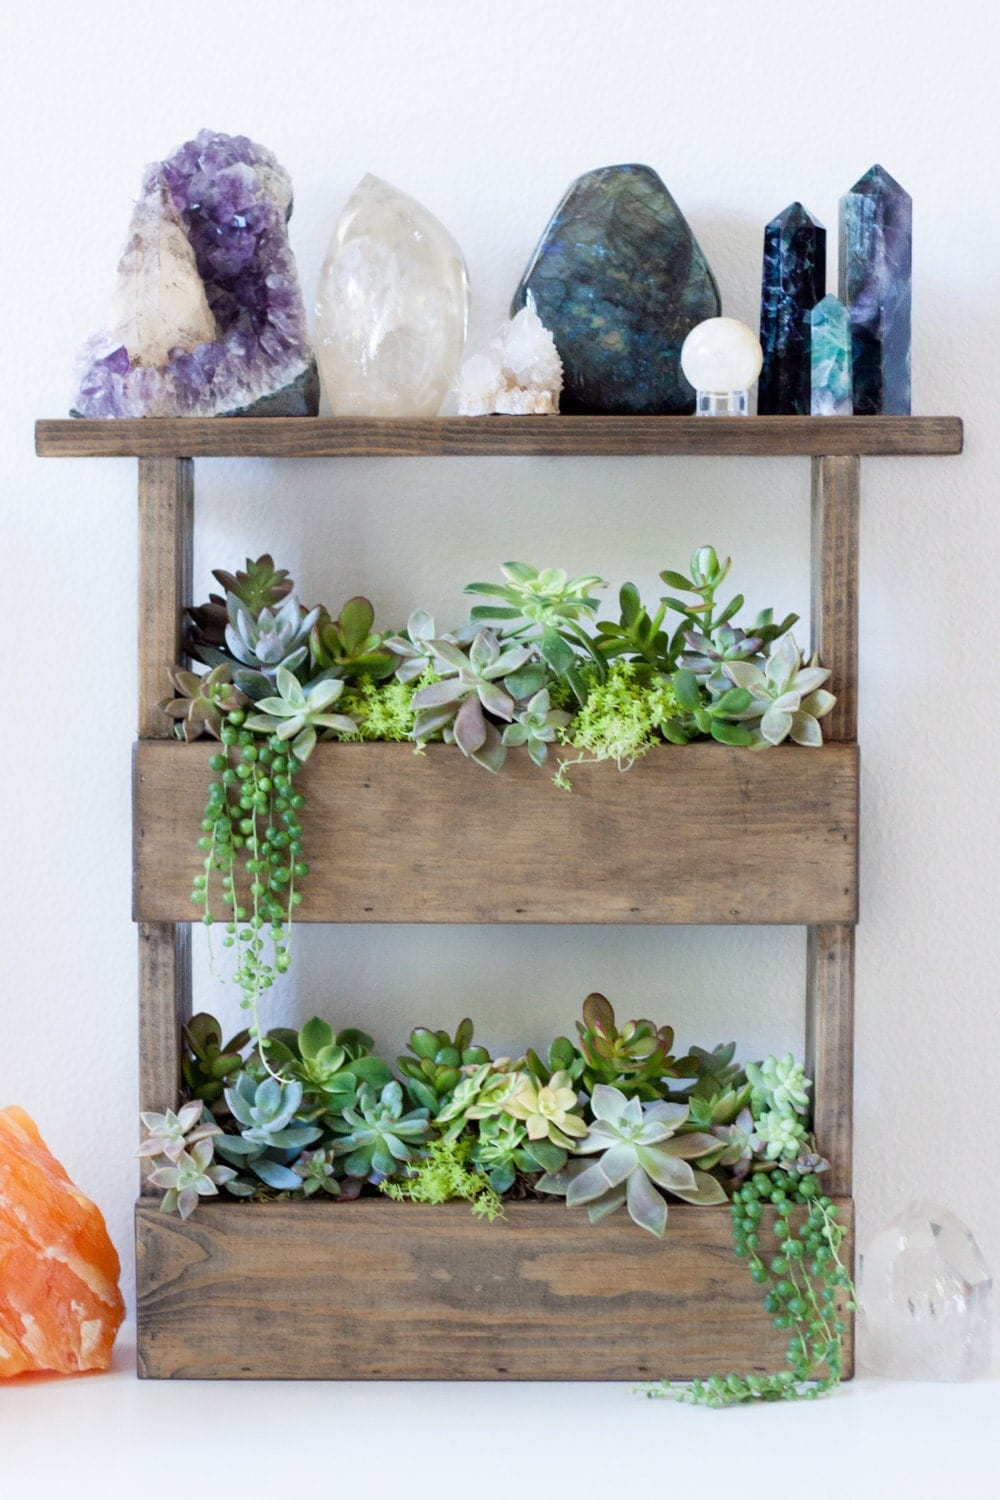 Vertical wall planter box pallet style crystal display shelf for Vertical planter boxes